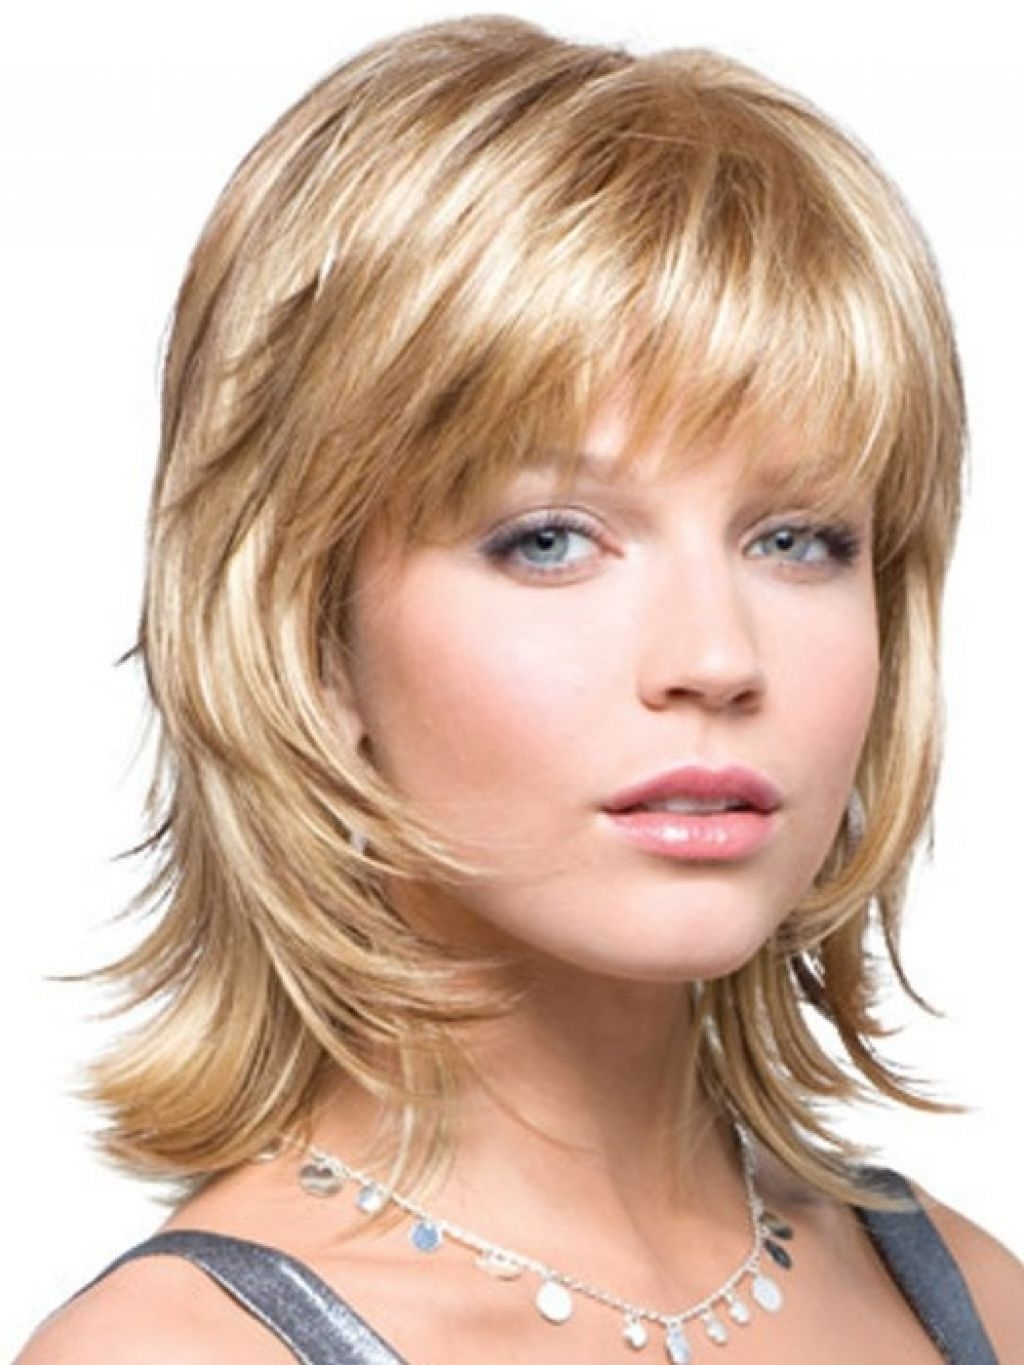 Pinterest For Preferred Shaggy Hairstyles For Coarse Hair (View 10 of 15)